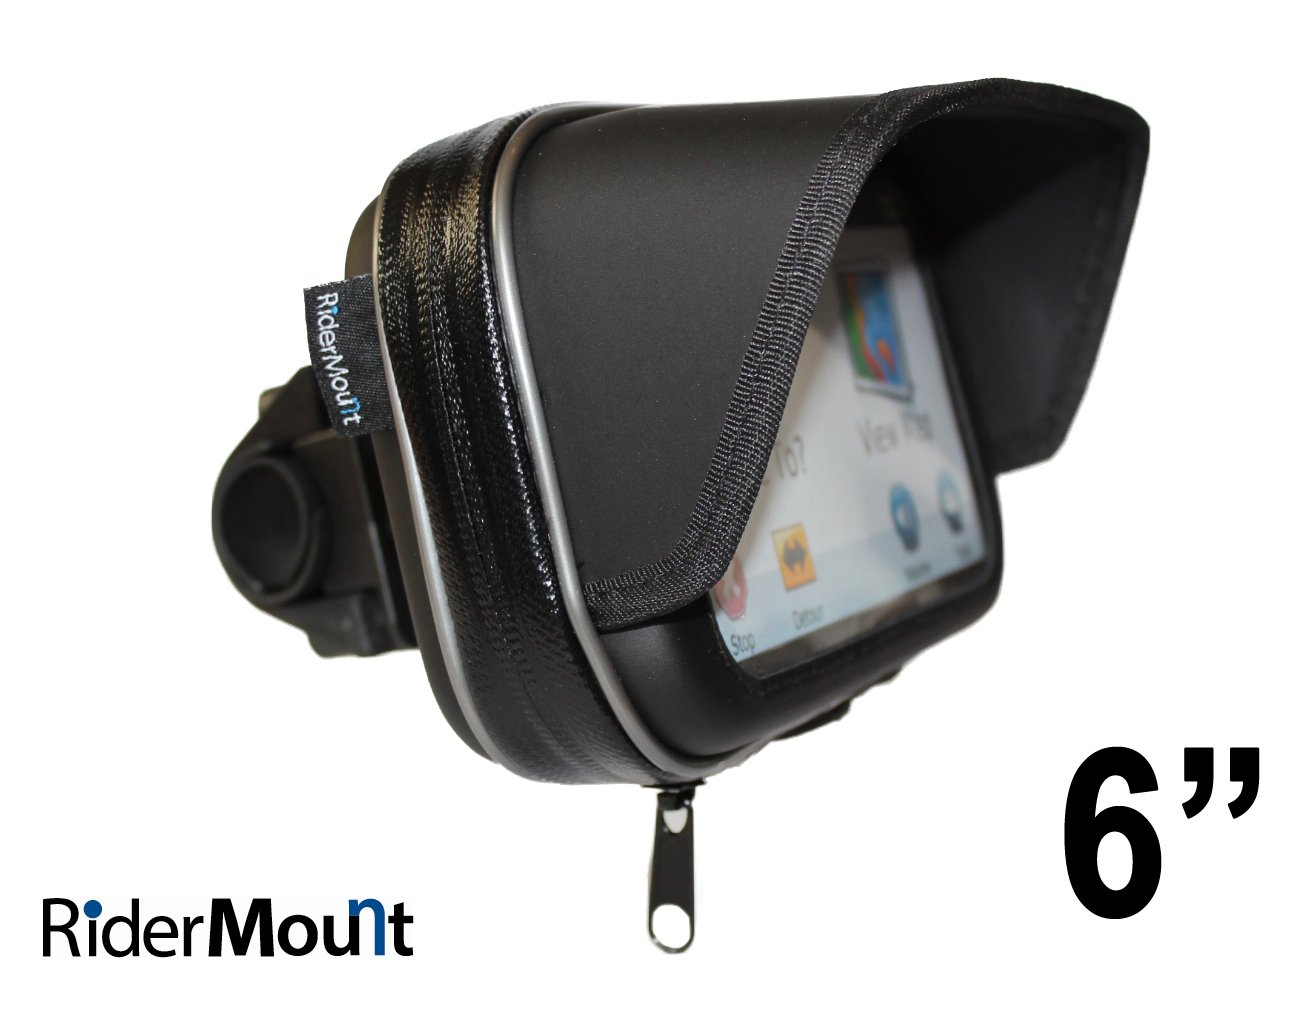 RiderMount waterproof Sunshade 6'' GPS Satnav Case with motorcycle motorbike handlebar mount for Garmin Nuvi TomTom Go Start Via 6 inch